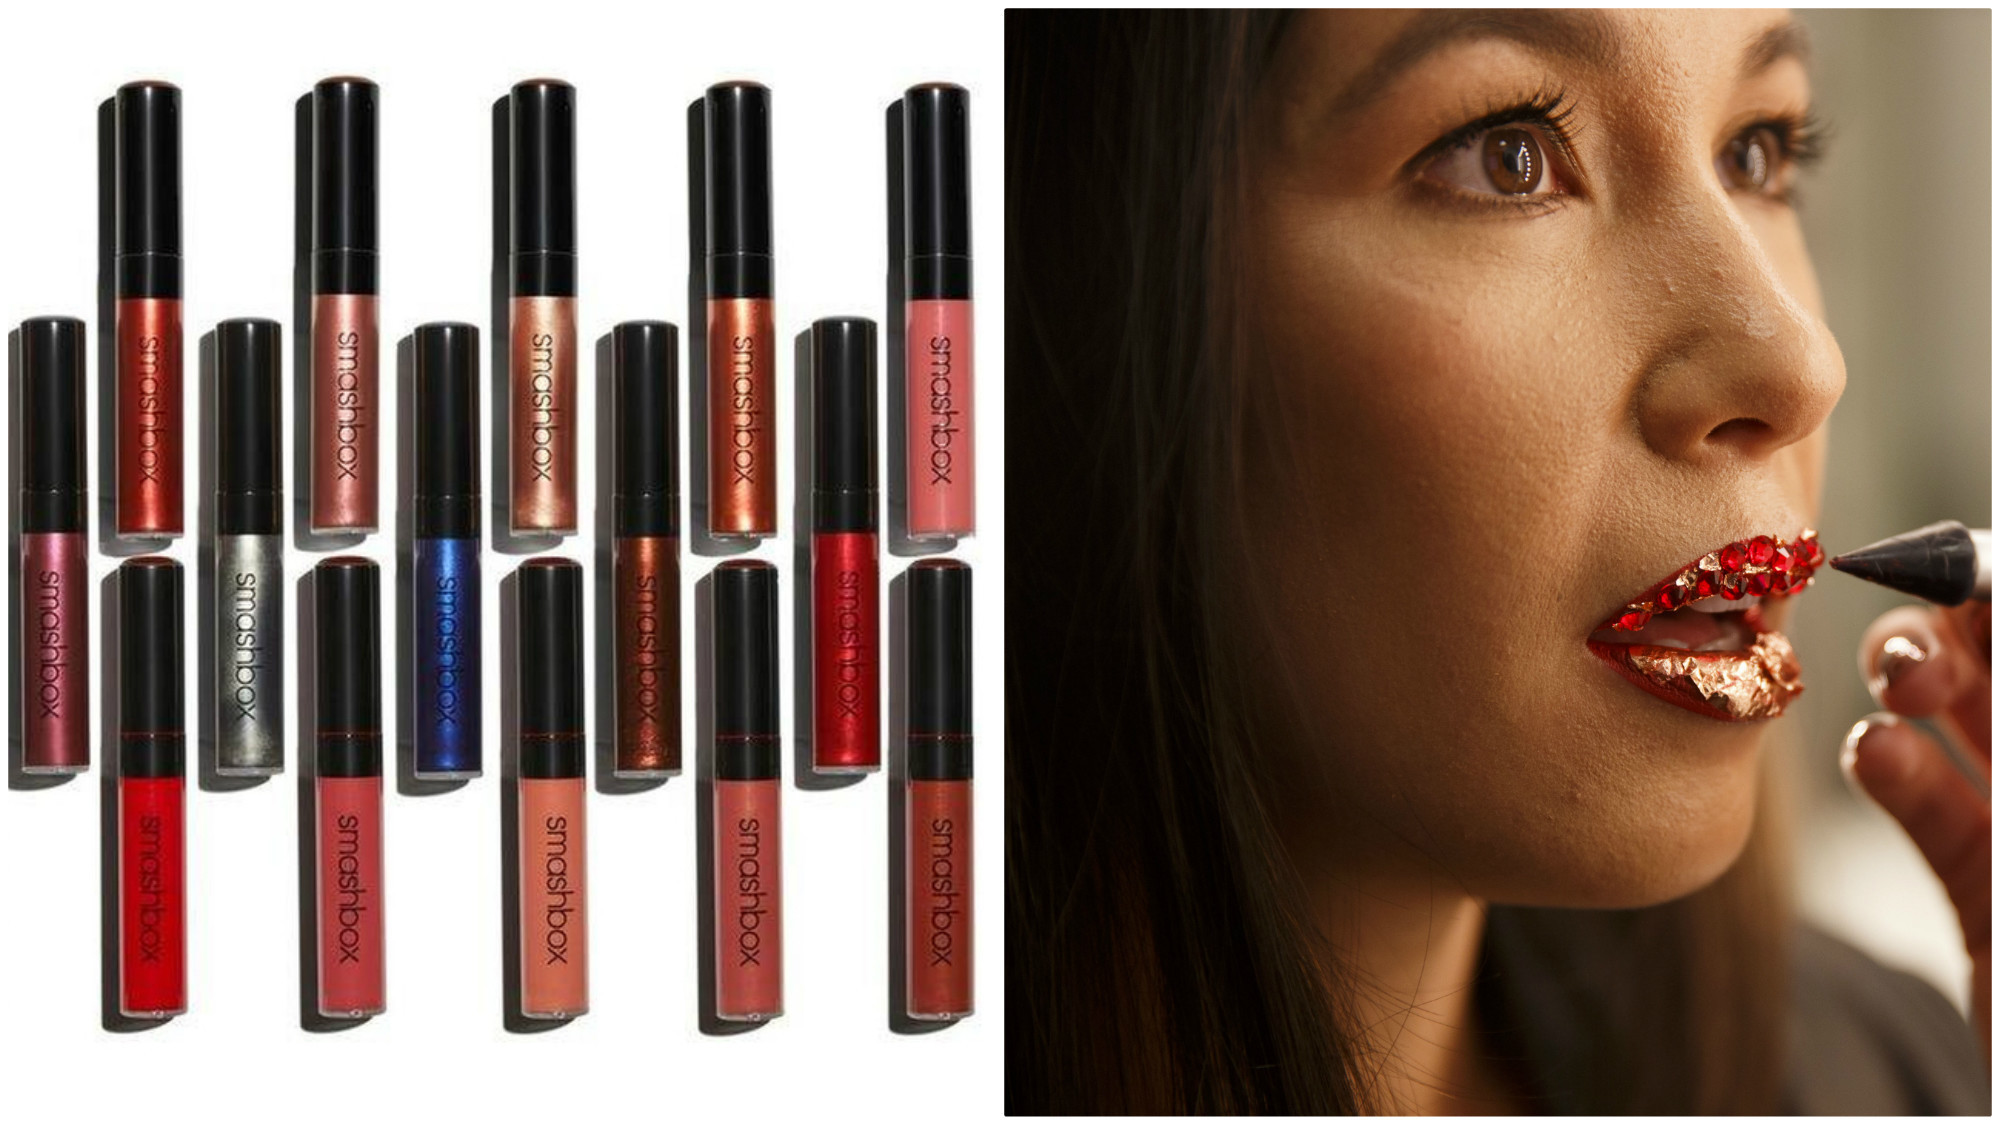 A look at Smashbox x Vlada Haggerty's Be Legendary Liquid Lip collection. At right, model Marlo Messer receives red jeweled and gold flex lip art by makeup artist Vlada Haggerty.